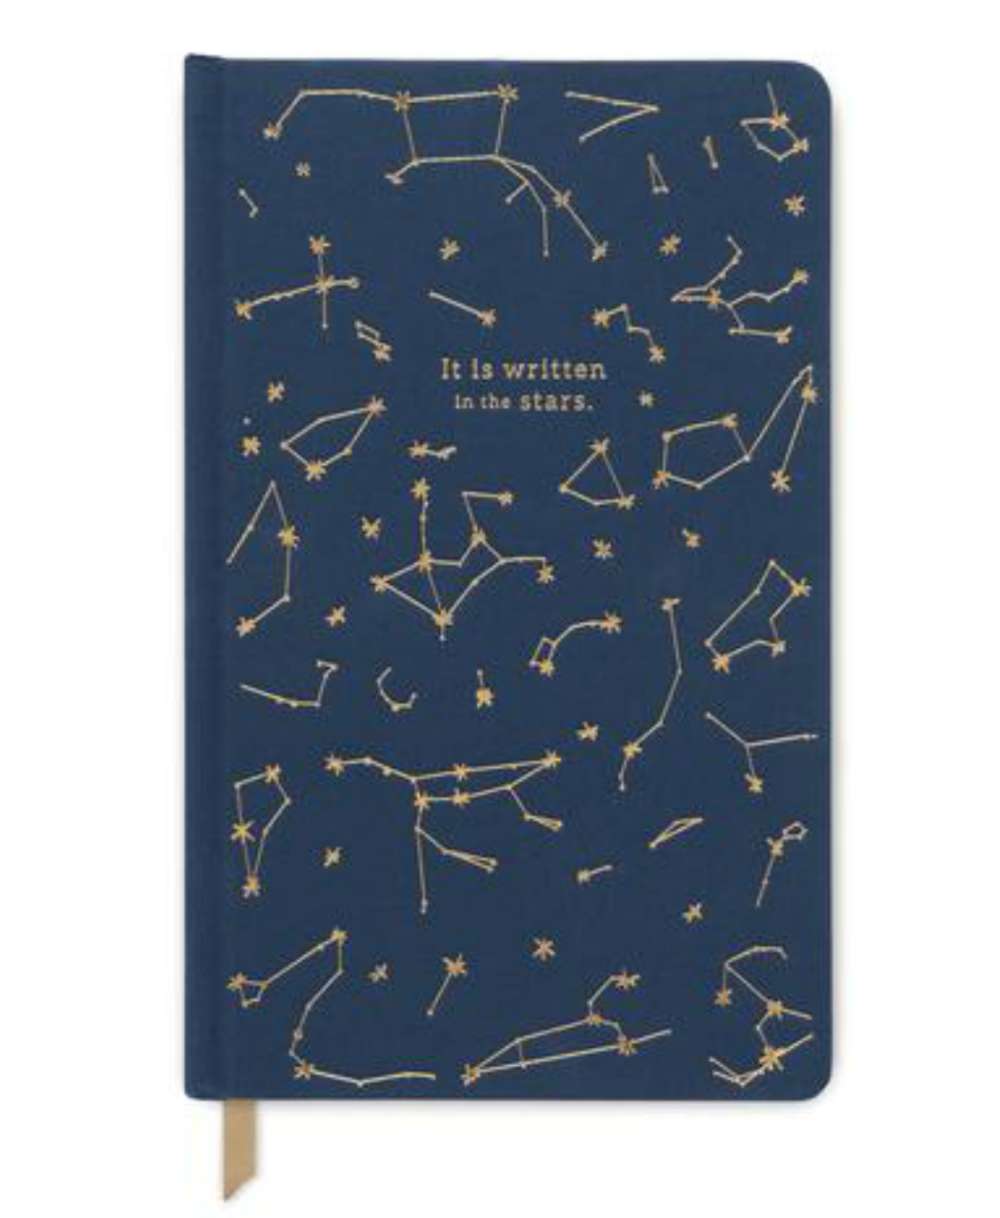 Designworks Ink Constellations Hardcover Journal